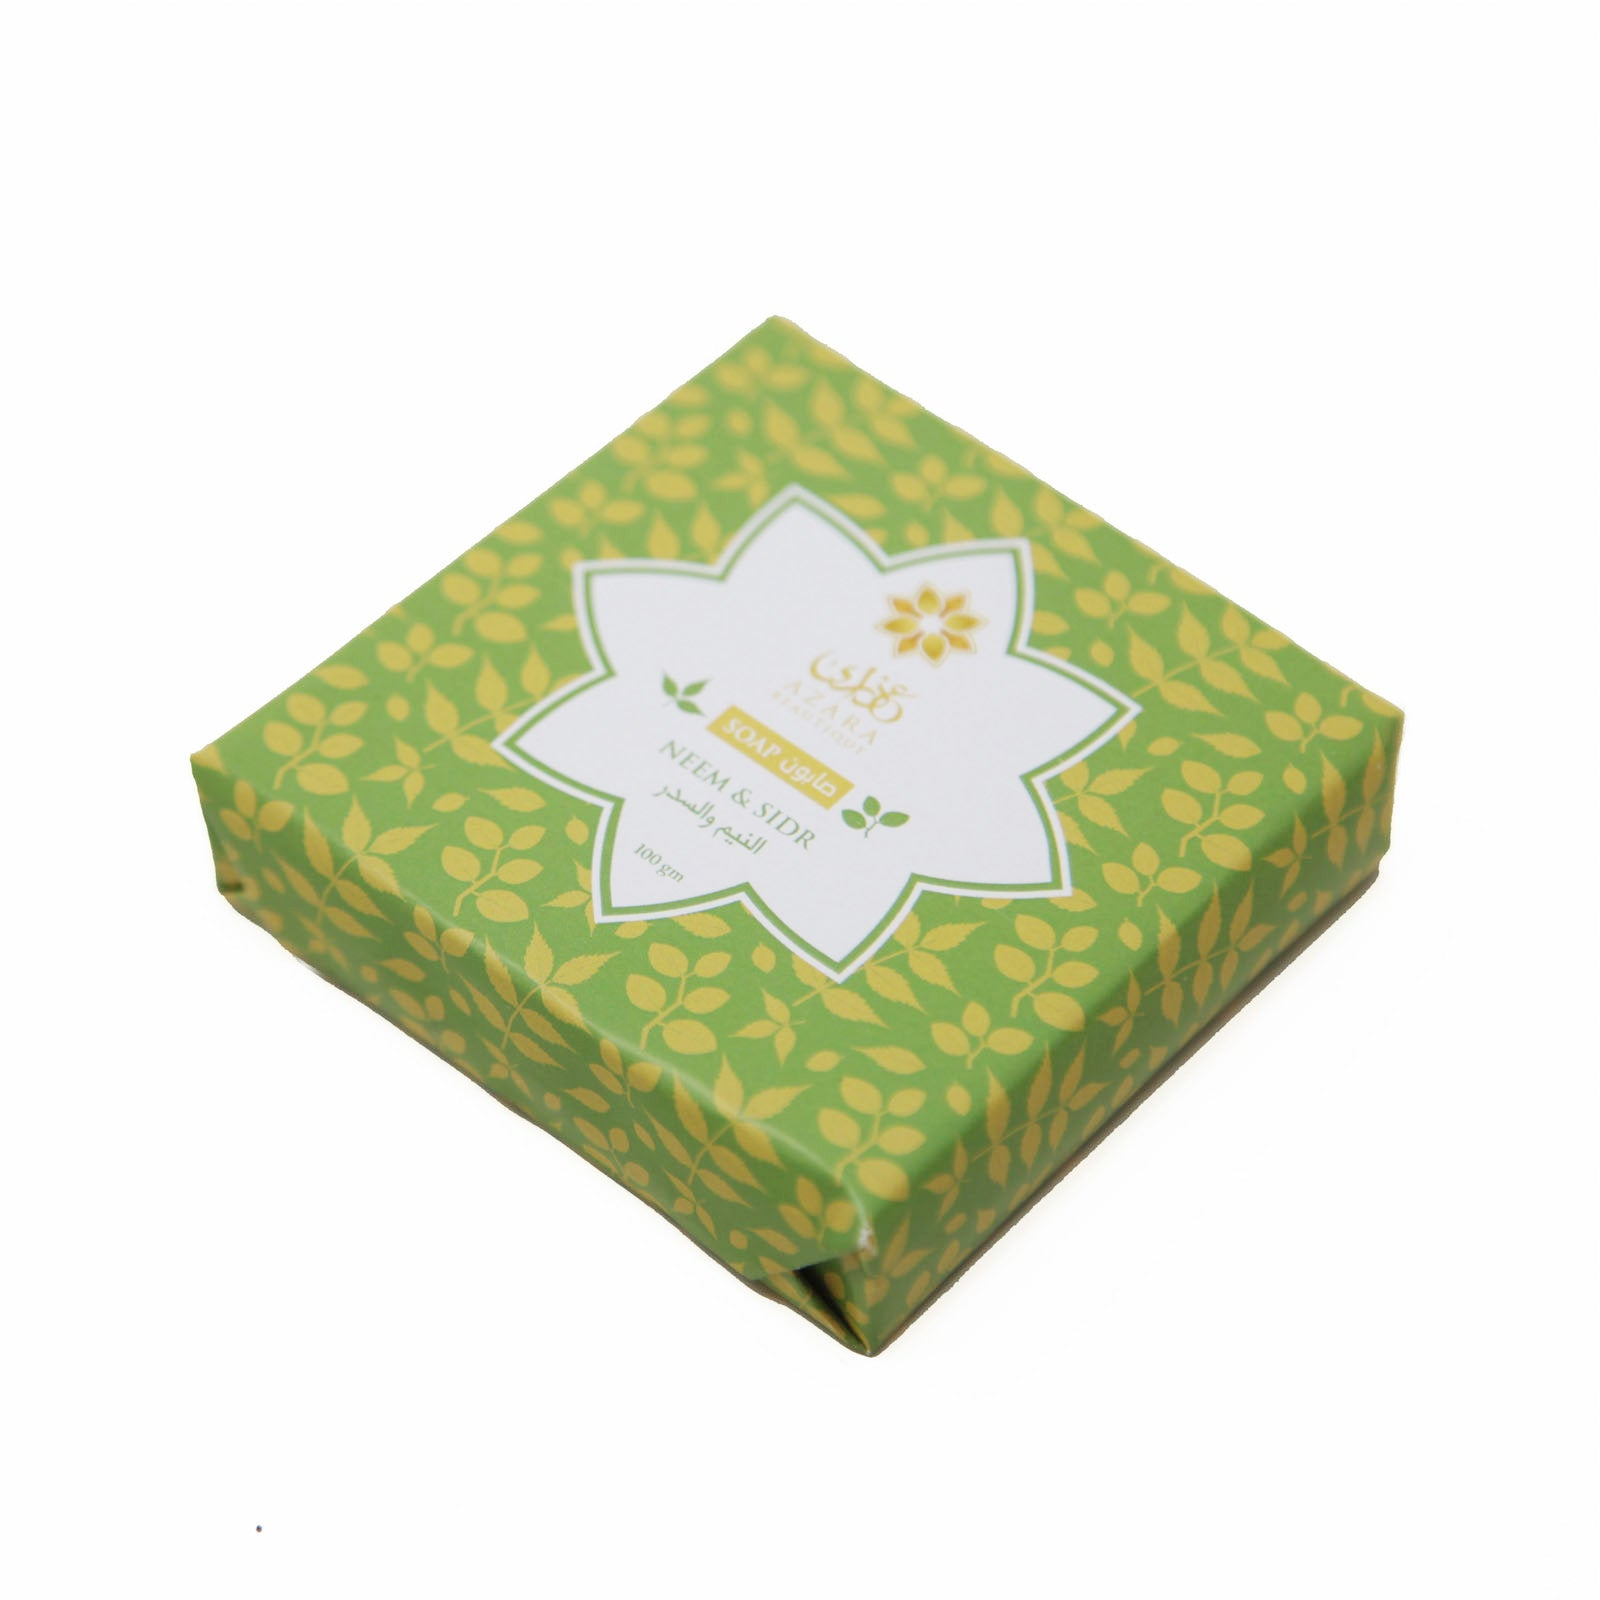 Neem and Sidr Soap